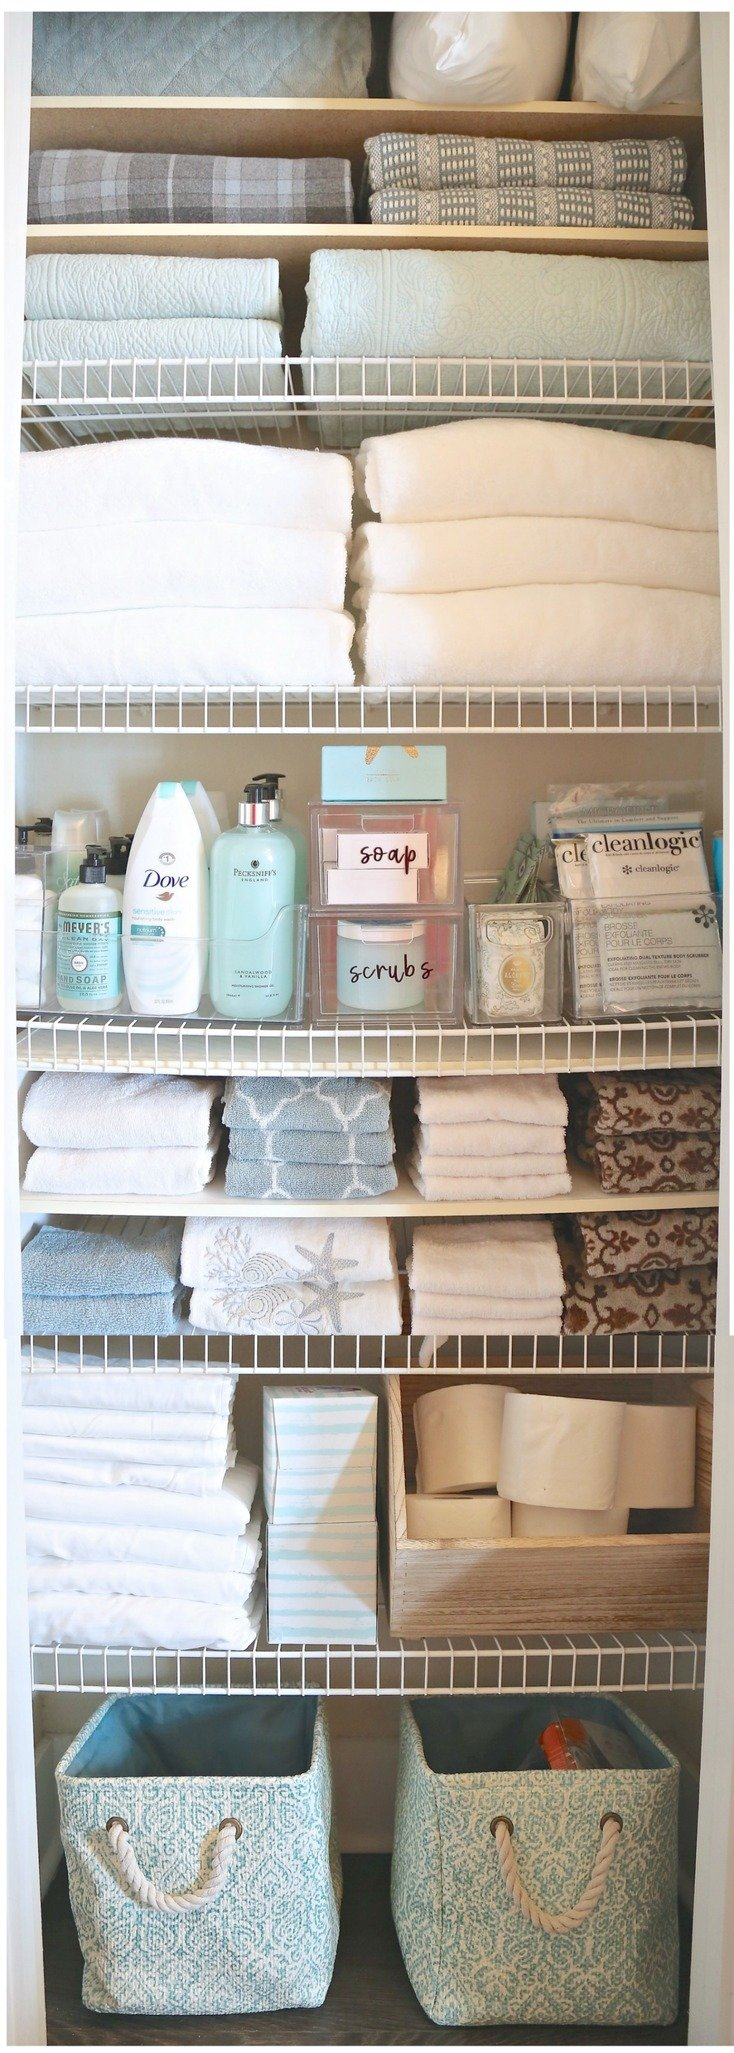 Creative ways to organize a linen closet or cabinet.